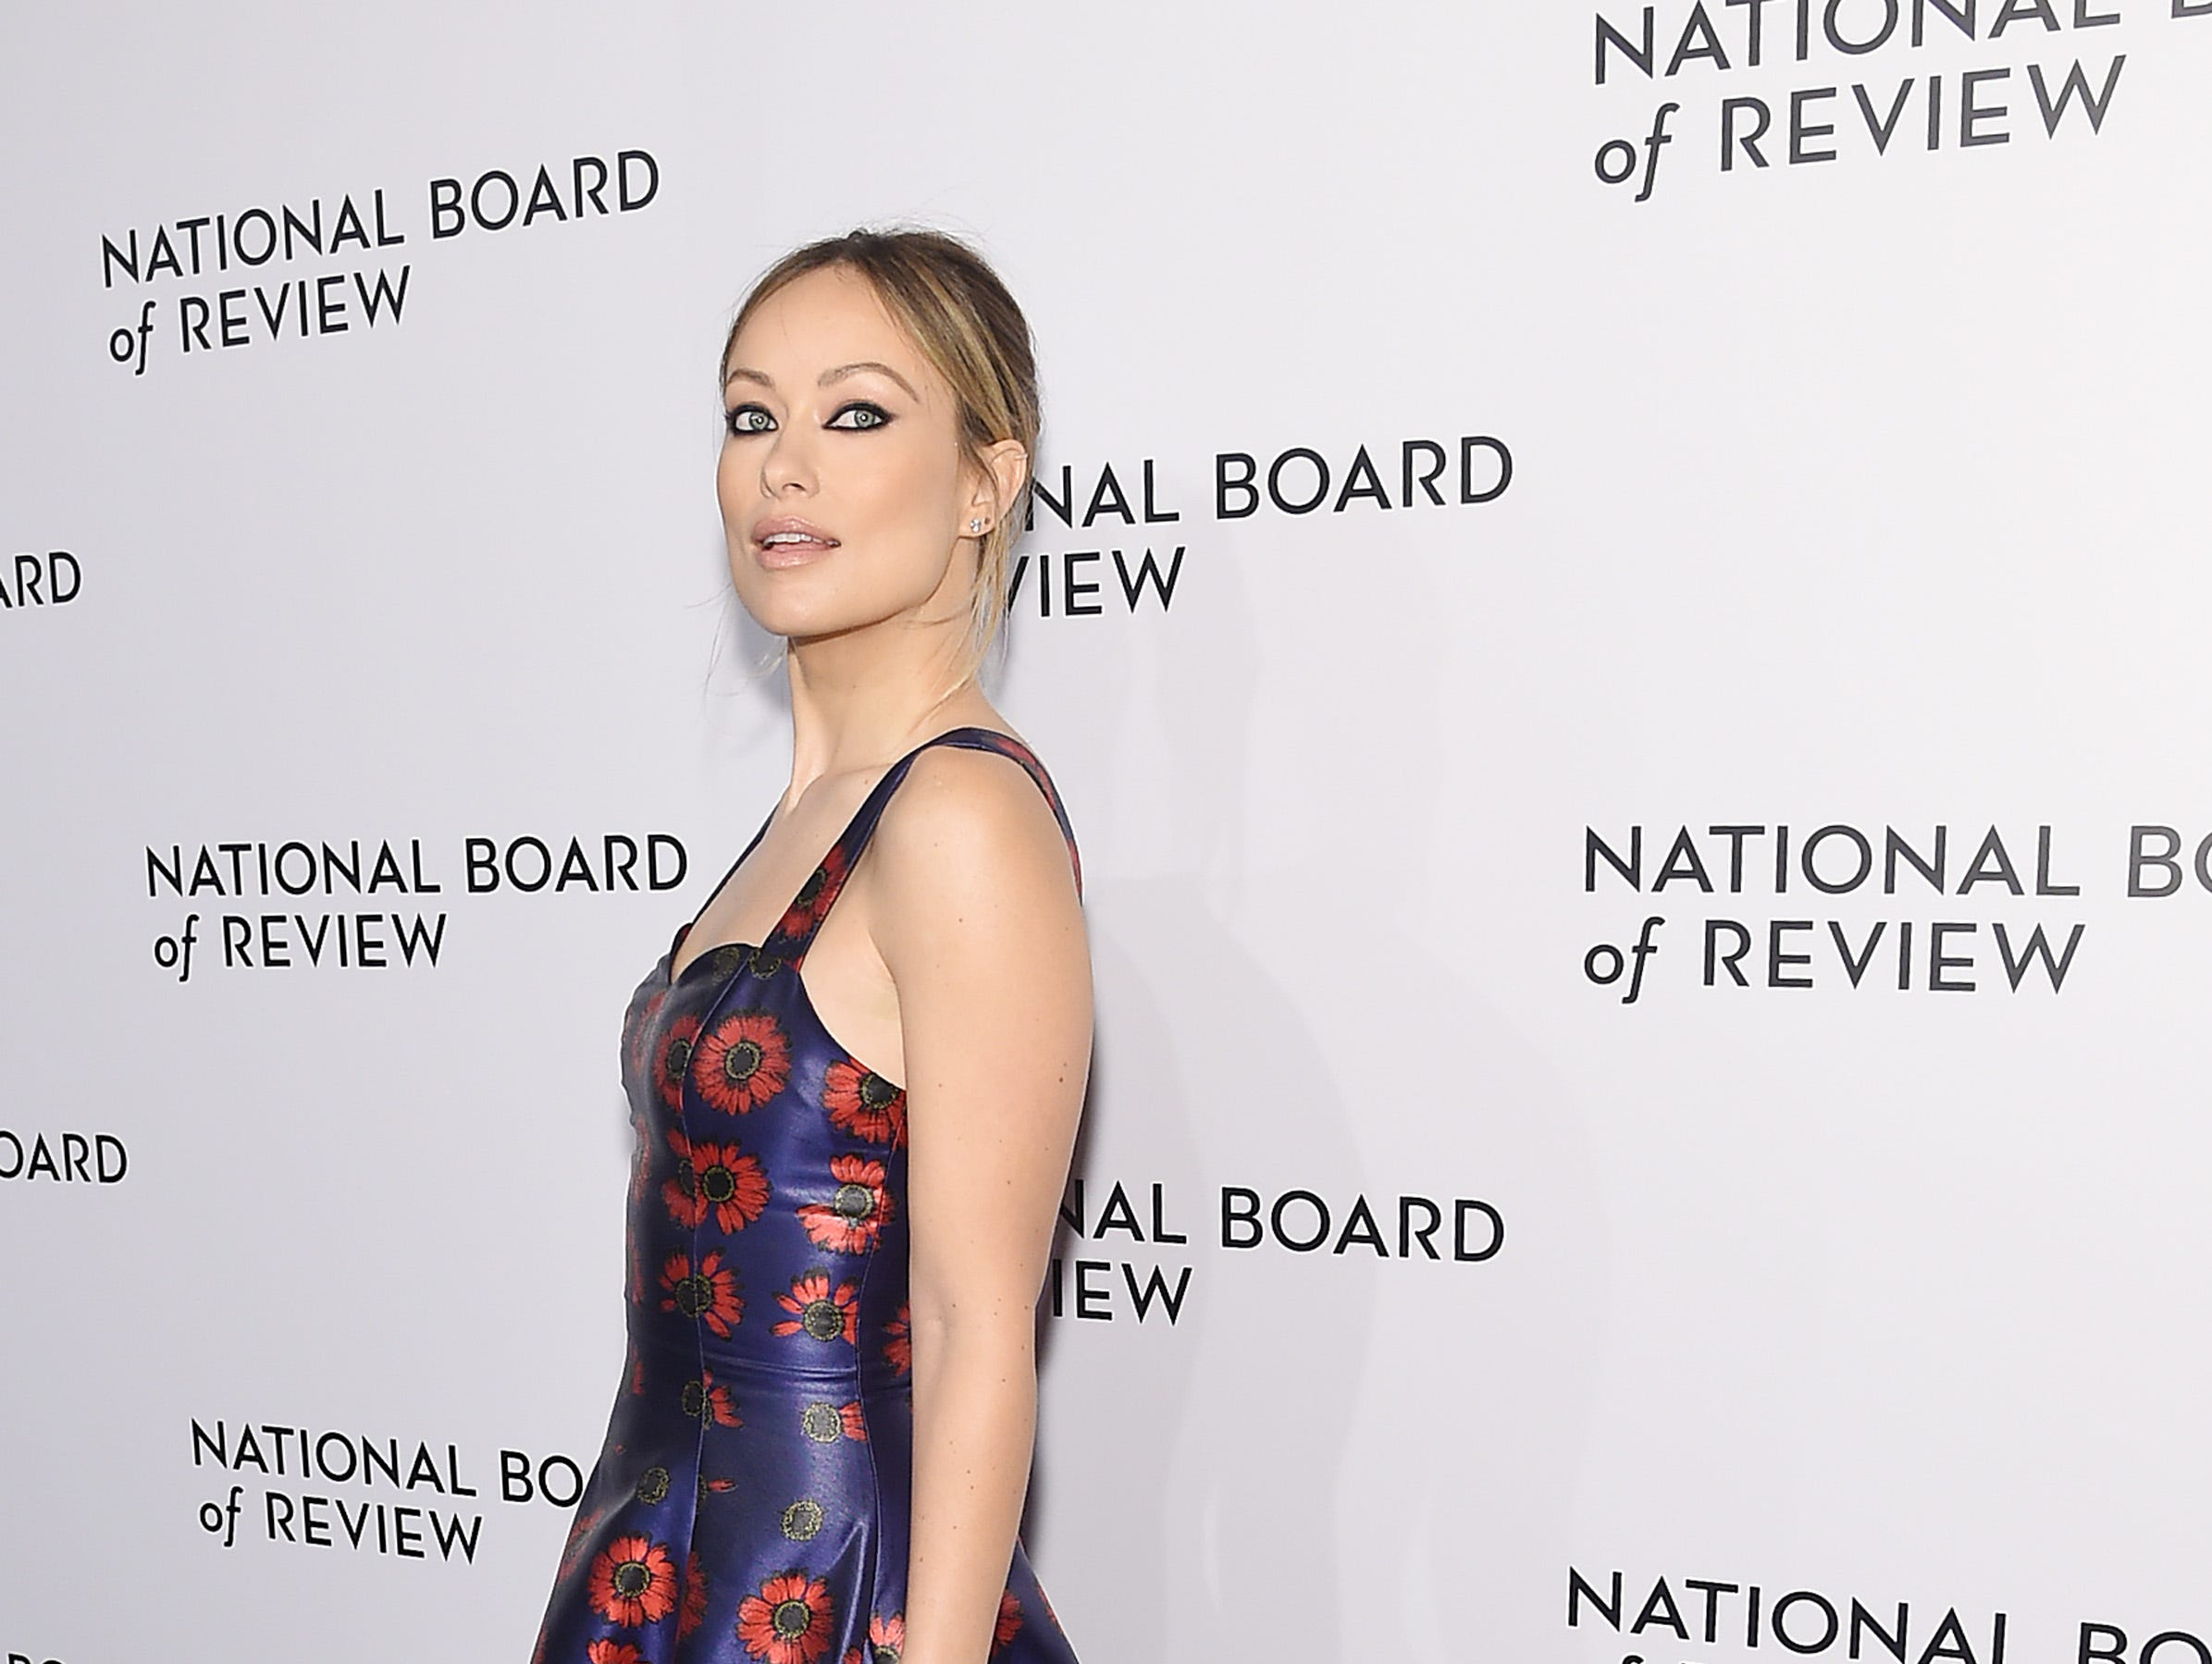 NEW YORK, NY - JANUARY 08: Olivia Wilde attends The National Board of Review Annual Awards Gala at Cipriani 42nd Street on January 8, 2019 in New York City.  (Photo by Jamie McCarthy/Getty Images for National Board of Review) ORG XMIT: 775259363 ORIG FILE ID: 1079454096